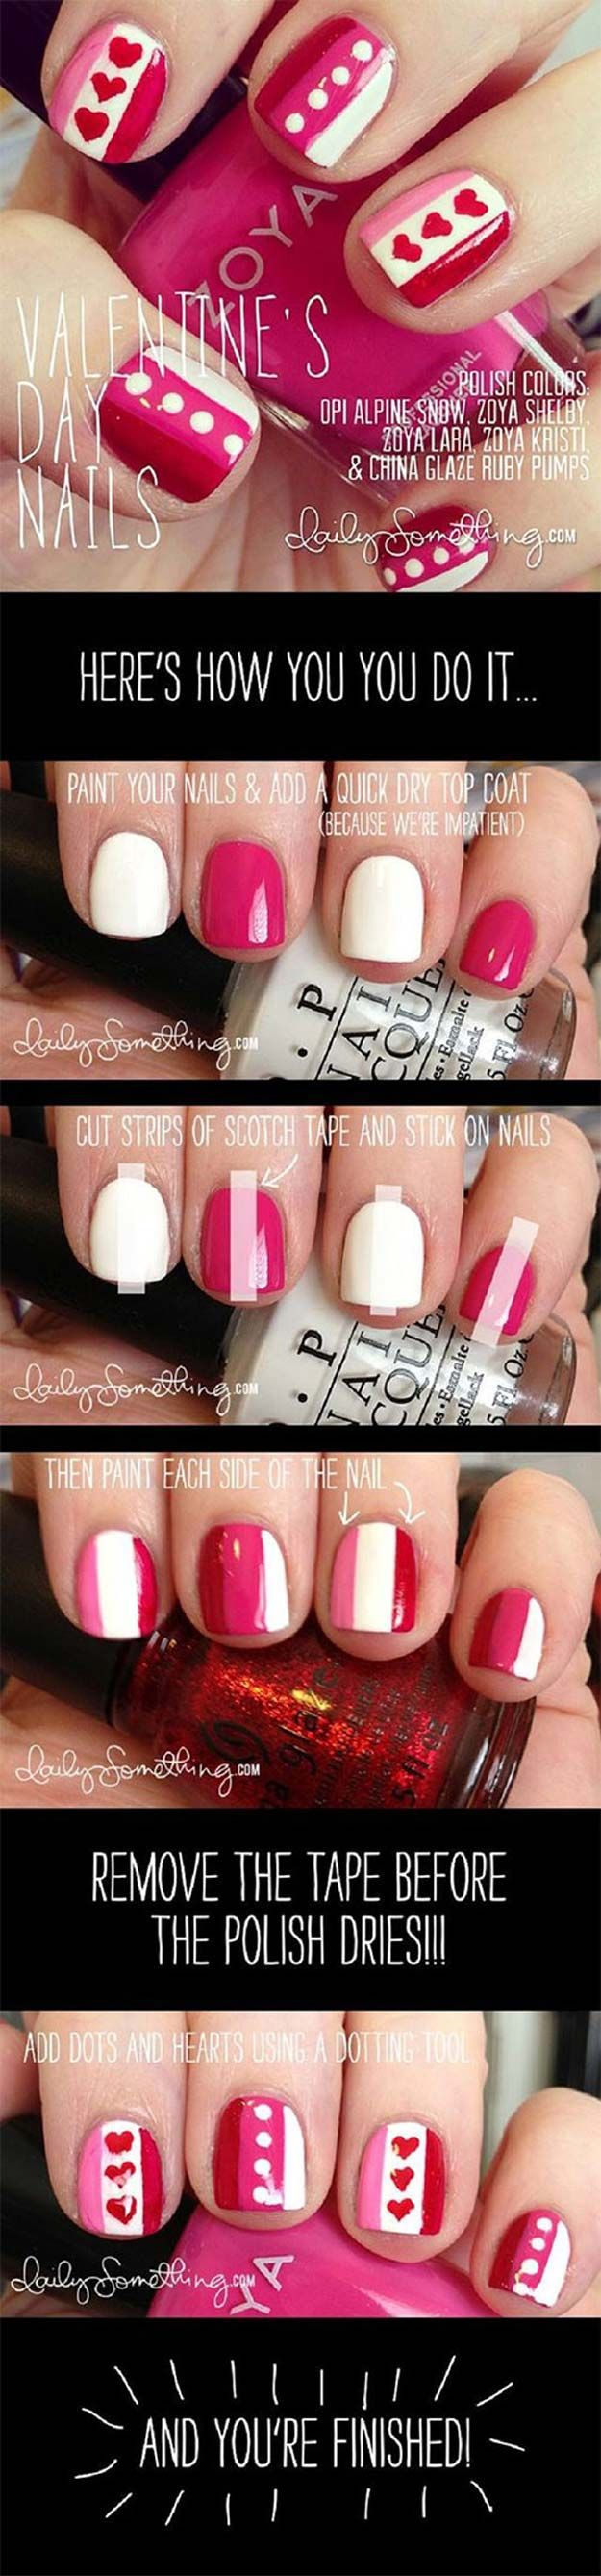 Valentine Nail Art Ideas - Valentine's Day Nail Art - Cute and Cool Looks For Valentines Day Nails - Hearts, Gradients, Red, Black and Pink Designs - Easy Ideas for DIY Manicures with Step by Step Tutorials - Fun Ideas for Teens, Teenagers and Women http://diyprojectsforteens.com/valentine-nail-art-ideas